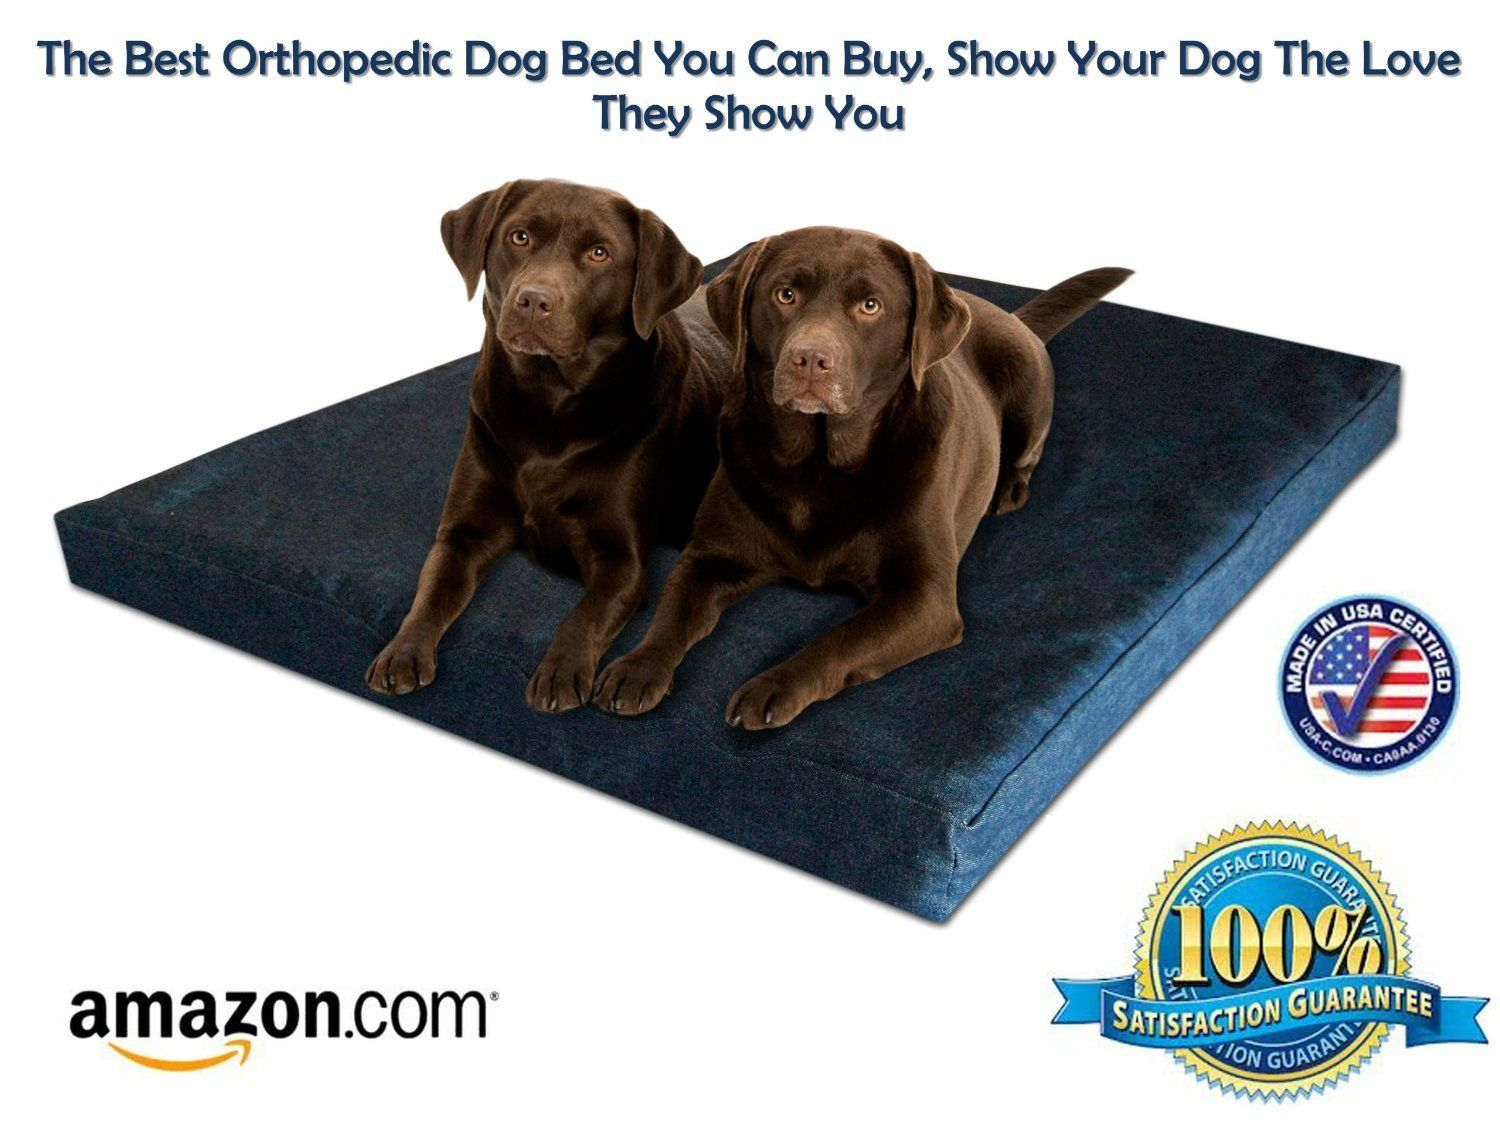 Extra large orthopedic dog beds best price - Extra Large Memory Foam Orthopedic Dog Bed X X Made In Usa Best Xl Luxury Large Breed Washable Pet Bed You Can Buy 4 Lb Memory Foam Puppy Bed